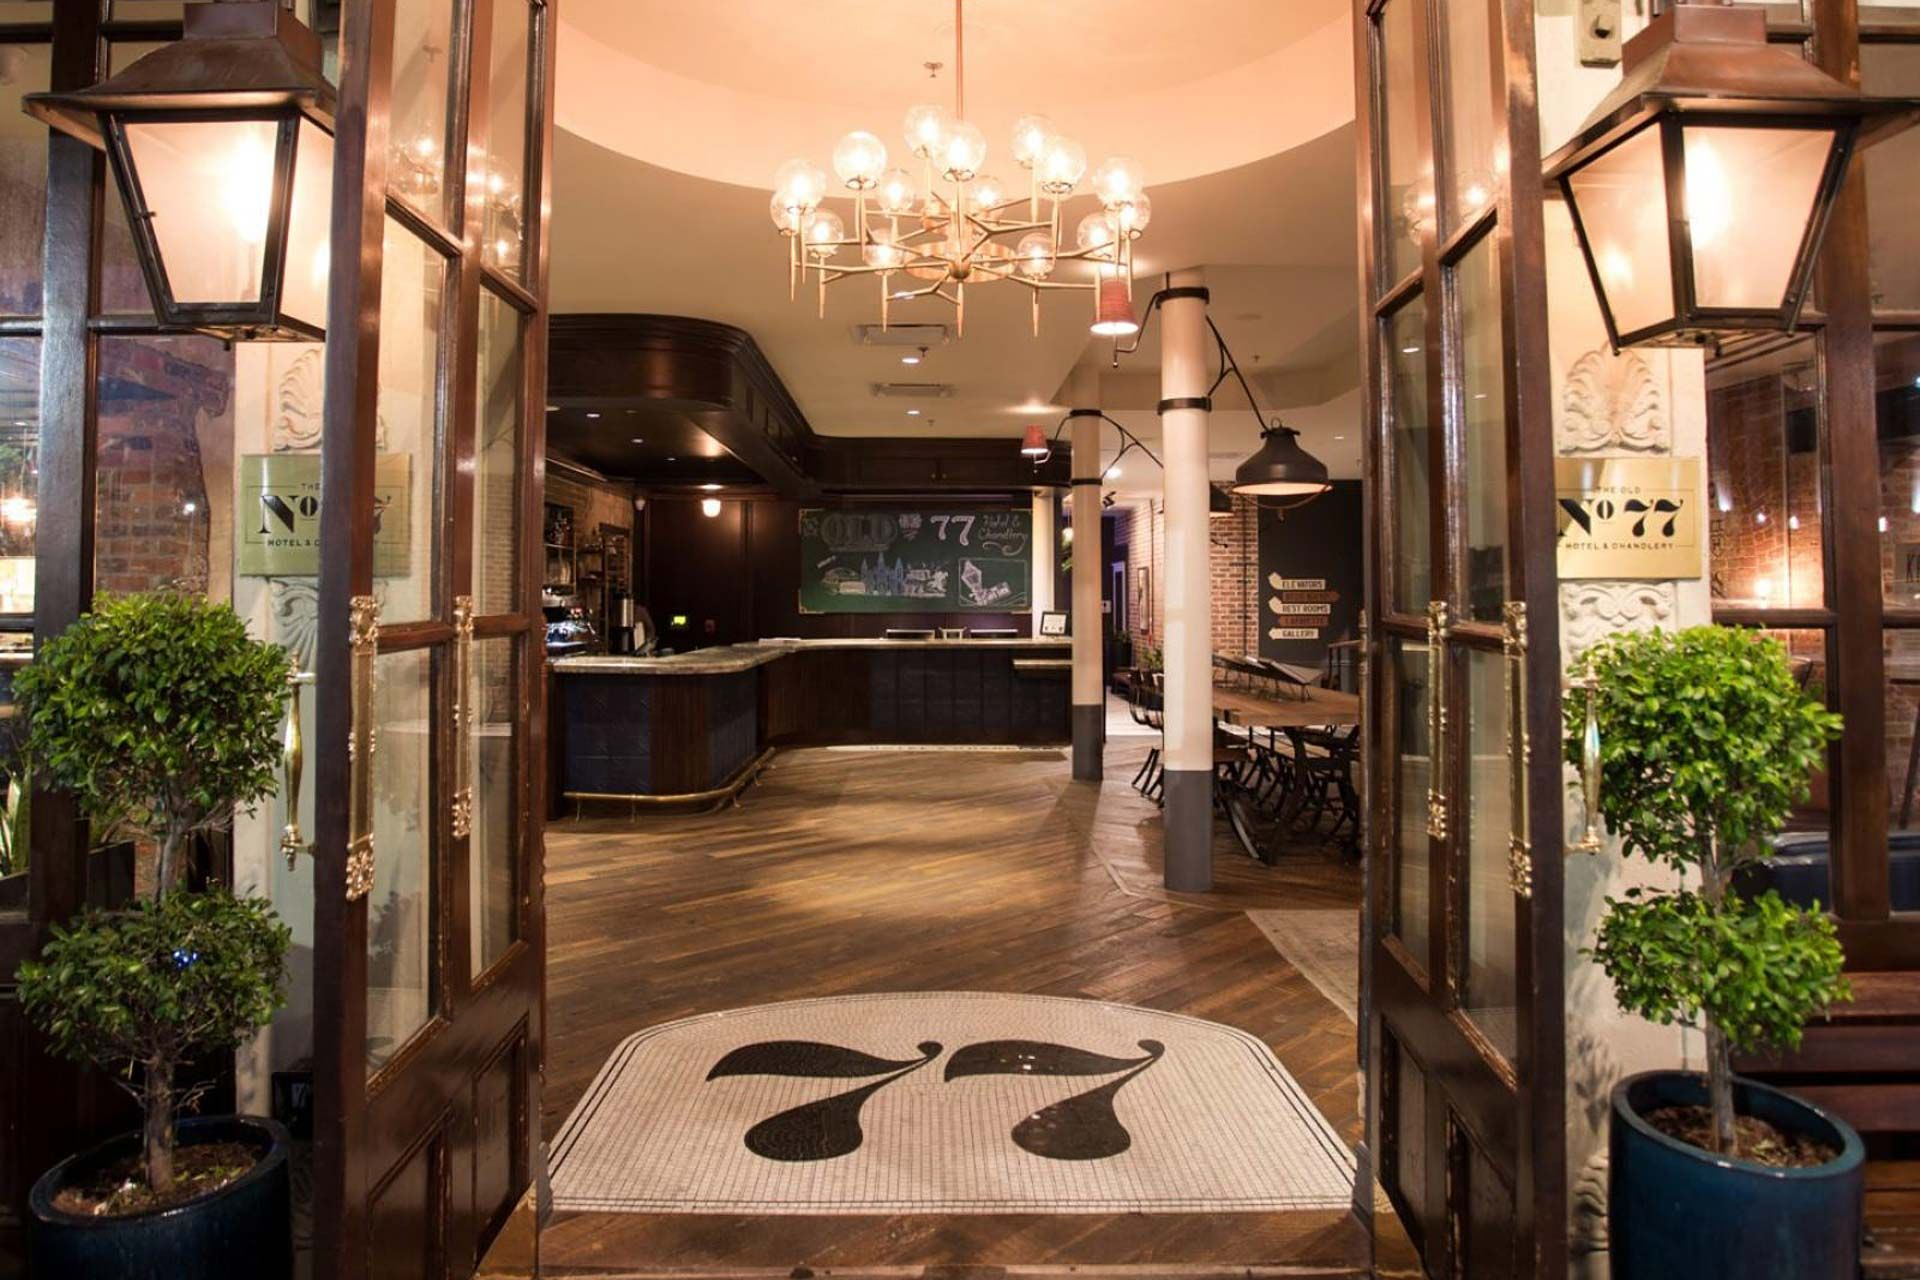 Located In The Heart Of New Orleans The Old No 77 Hotel Thrives